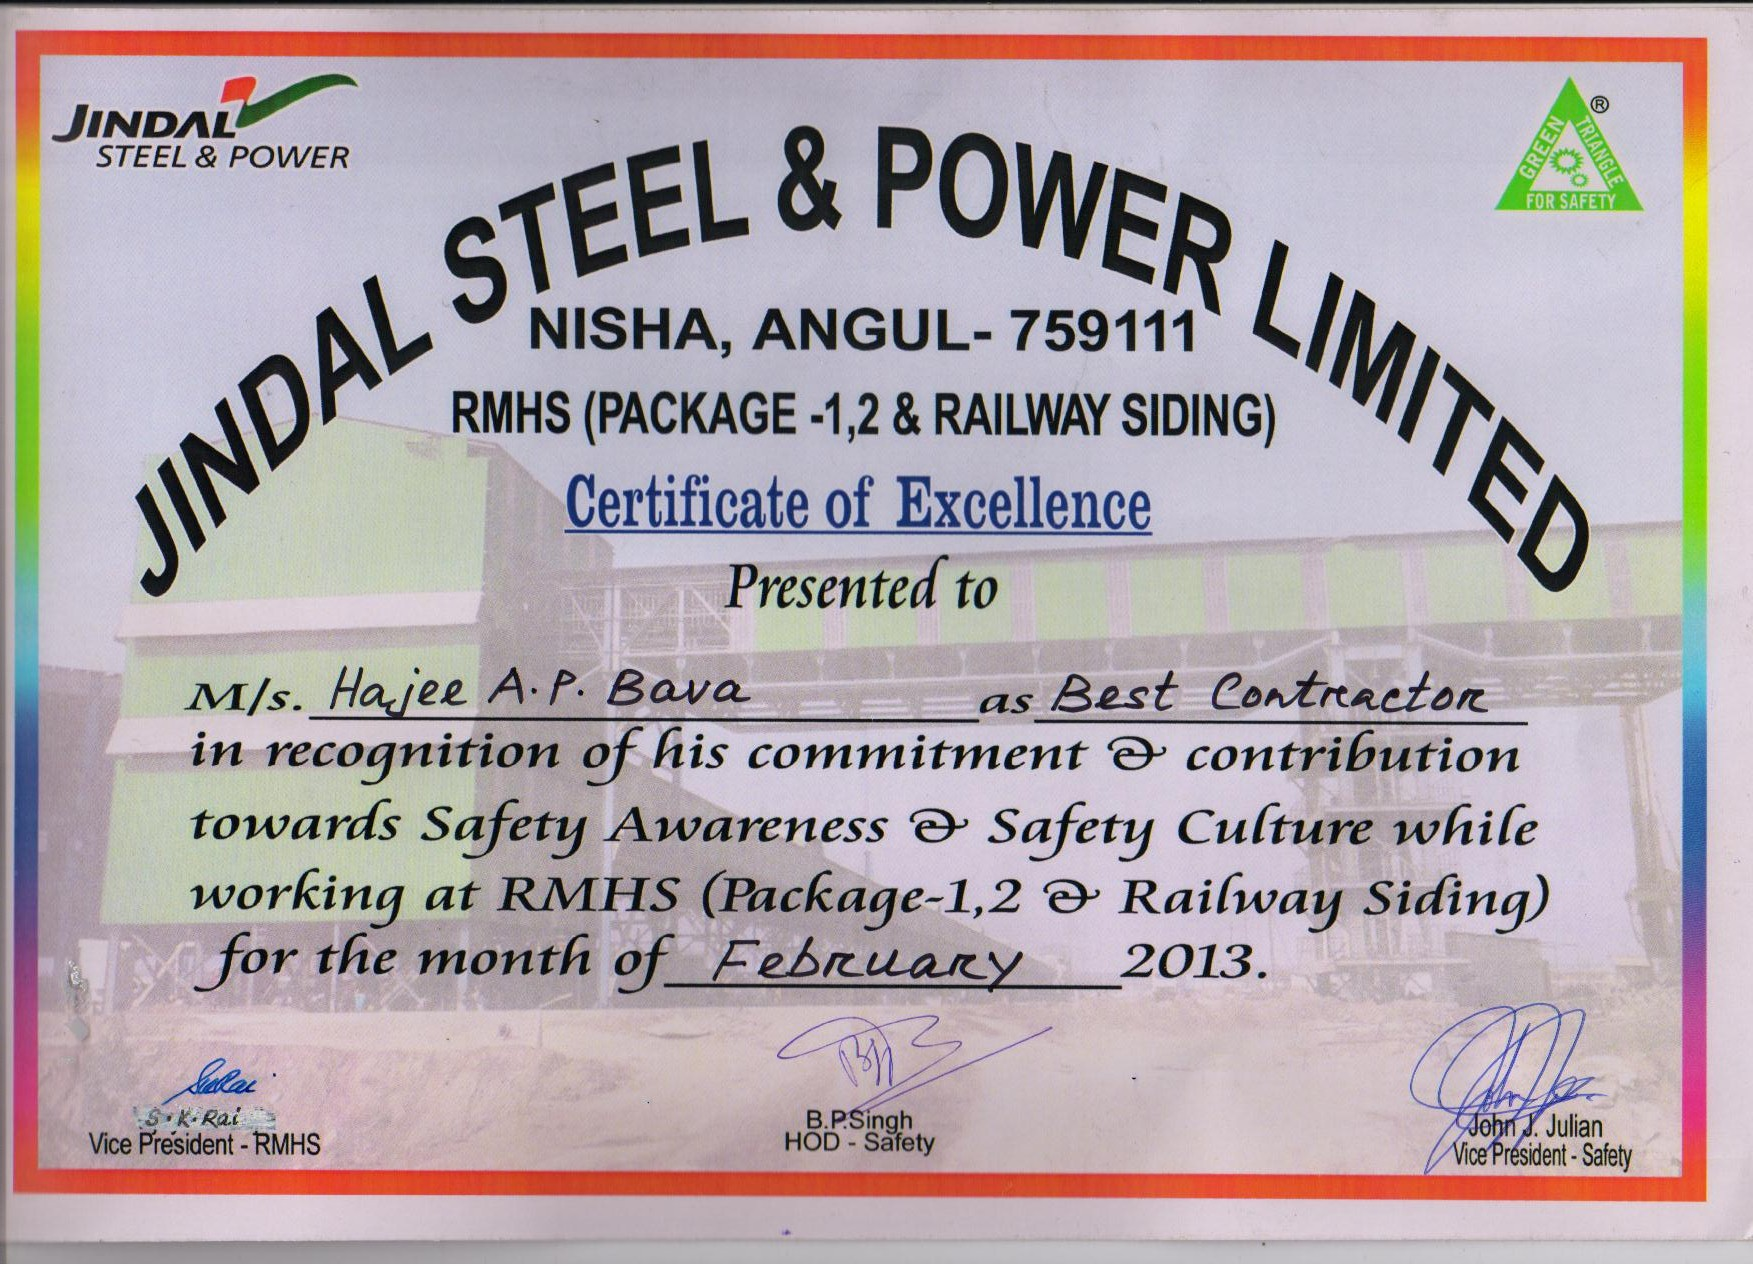 Appreciation Letter from Jindal Steel & Power Ltd